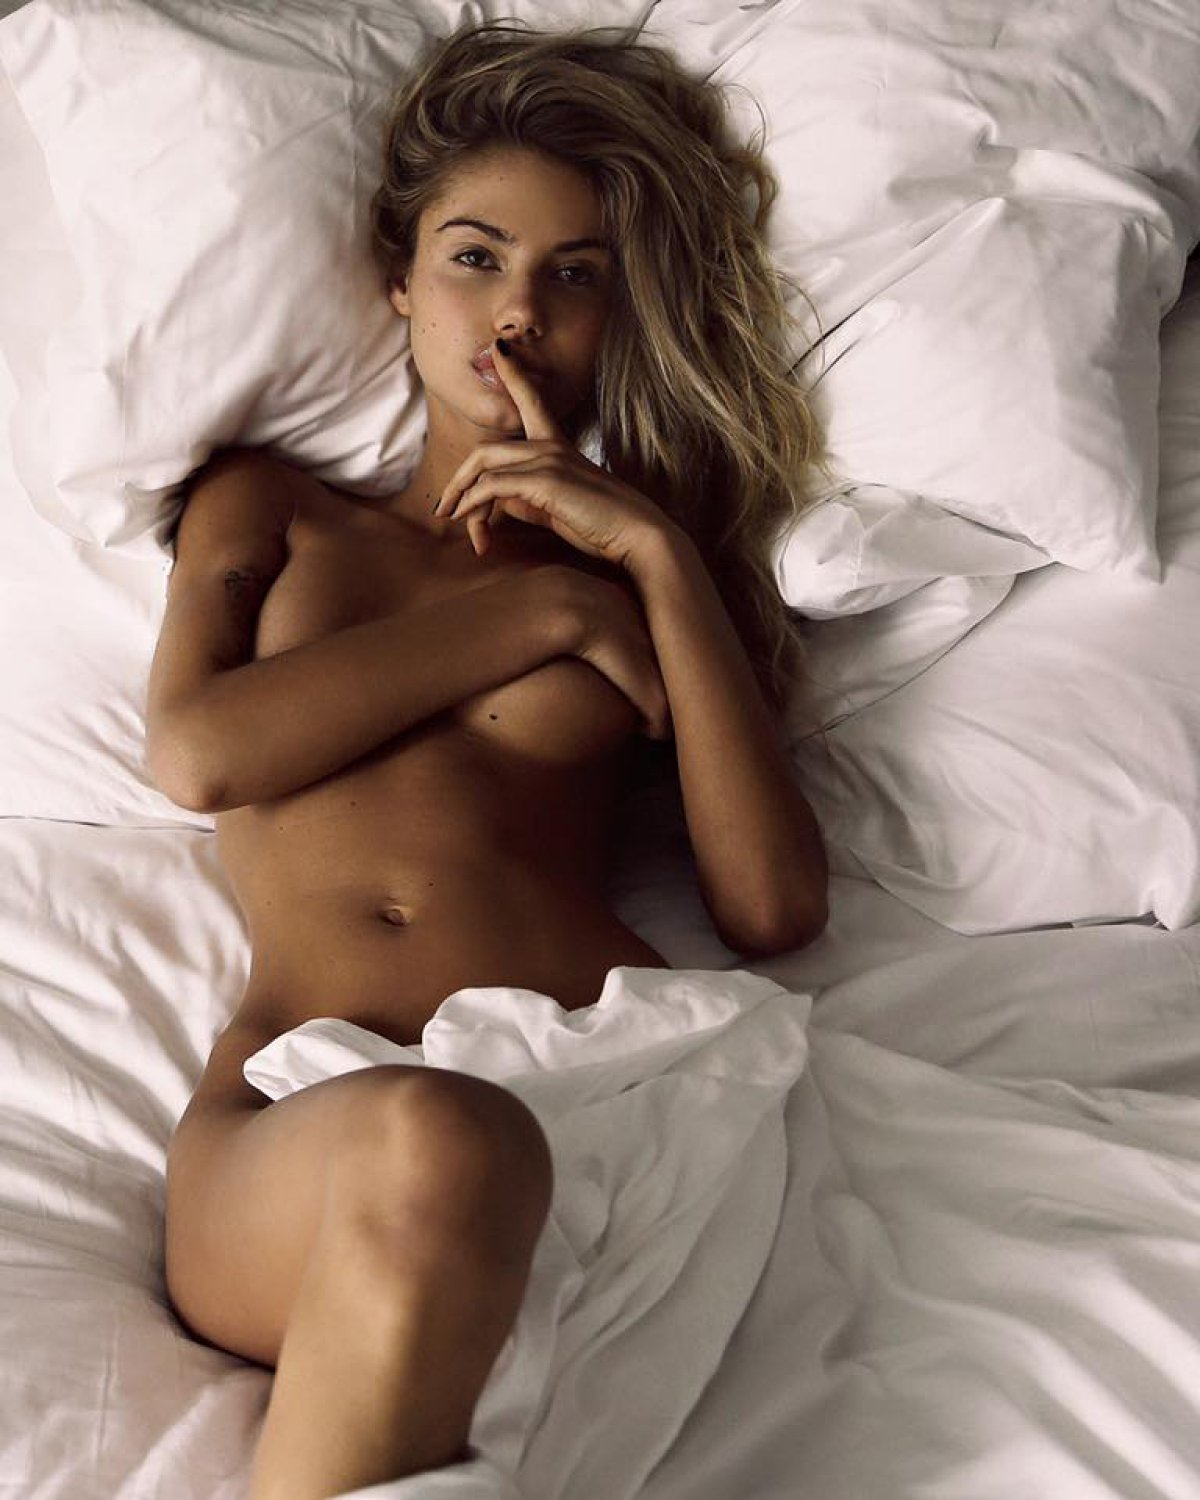 Discussion on this topic: Erika jordan sexy 2, sahara-ray-sexy-photos/